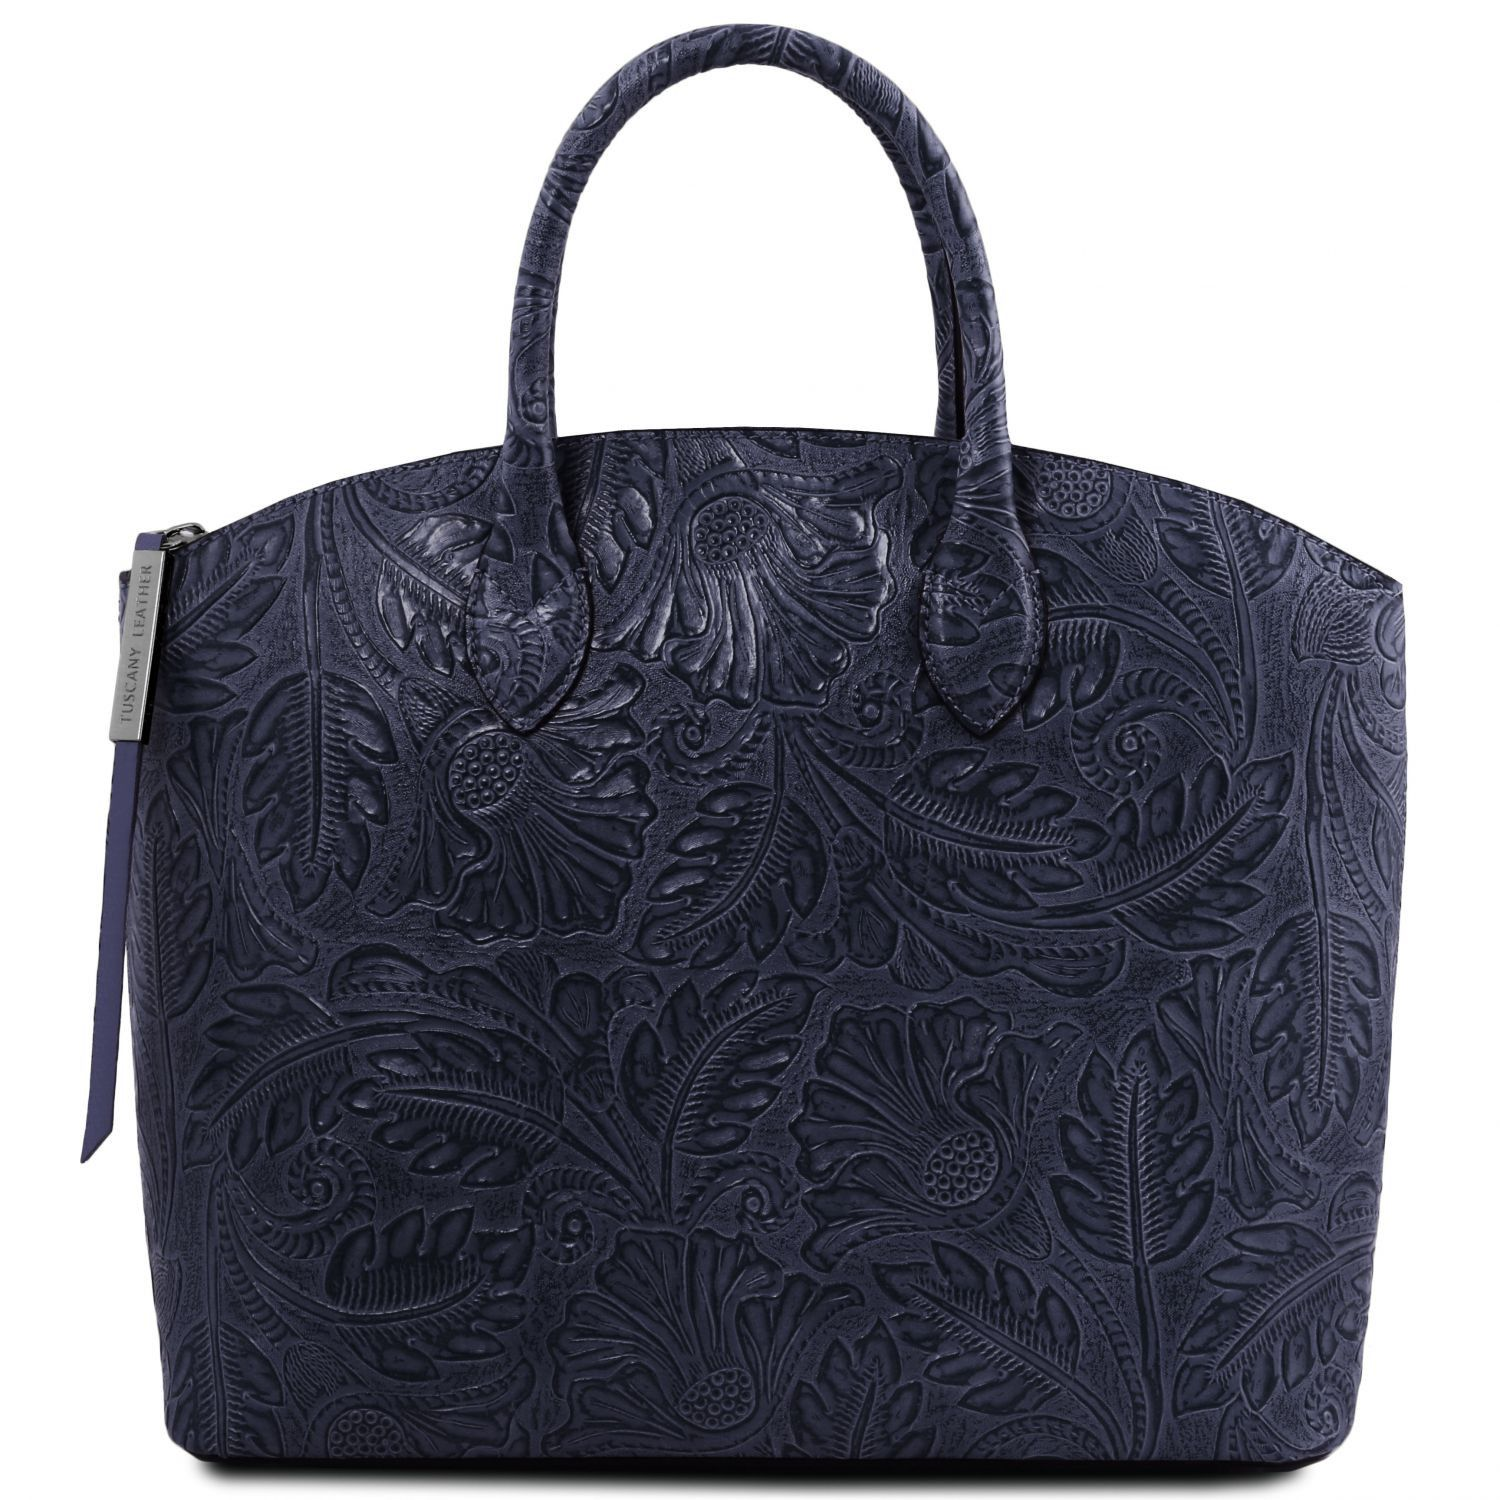 Borsa shopping in pelle stampa floreale Blu scuro